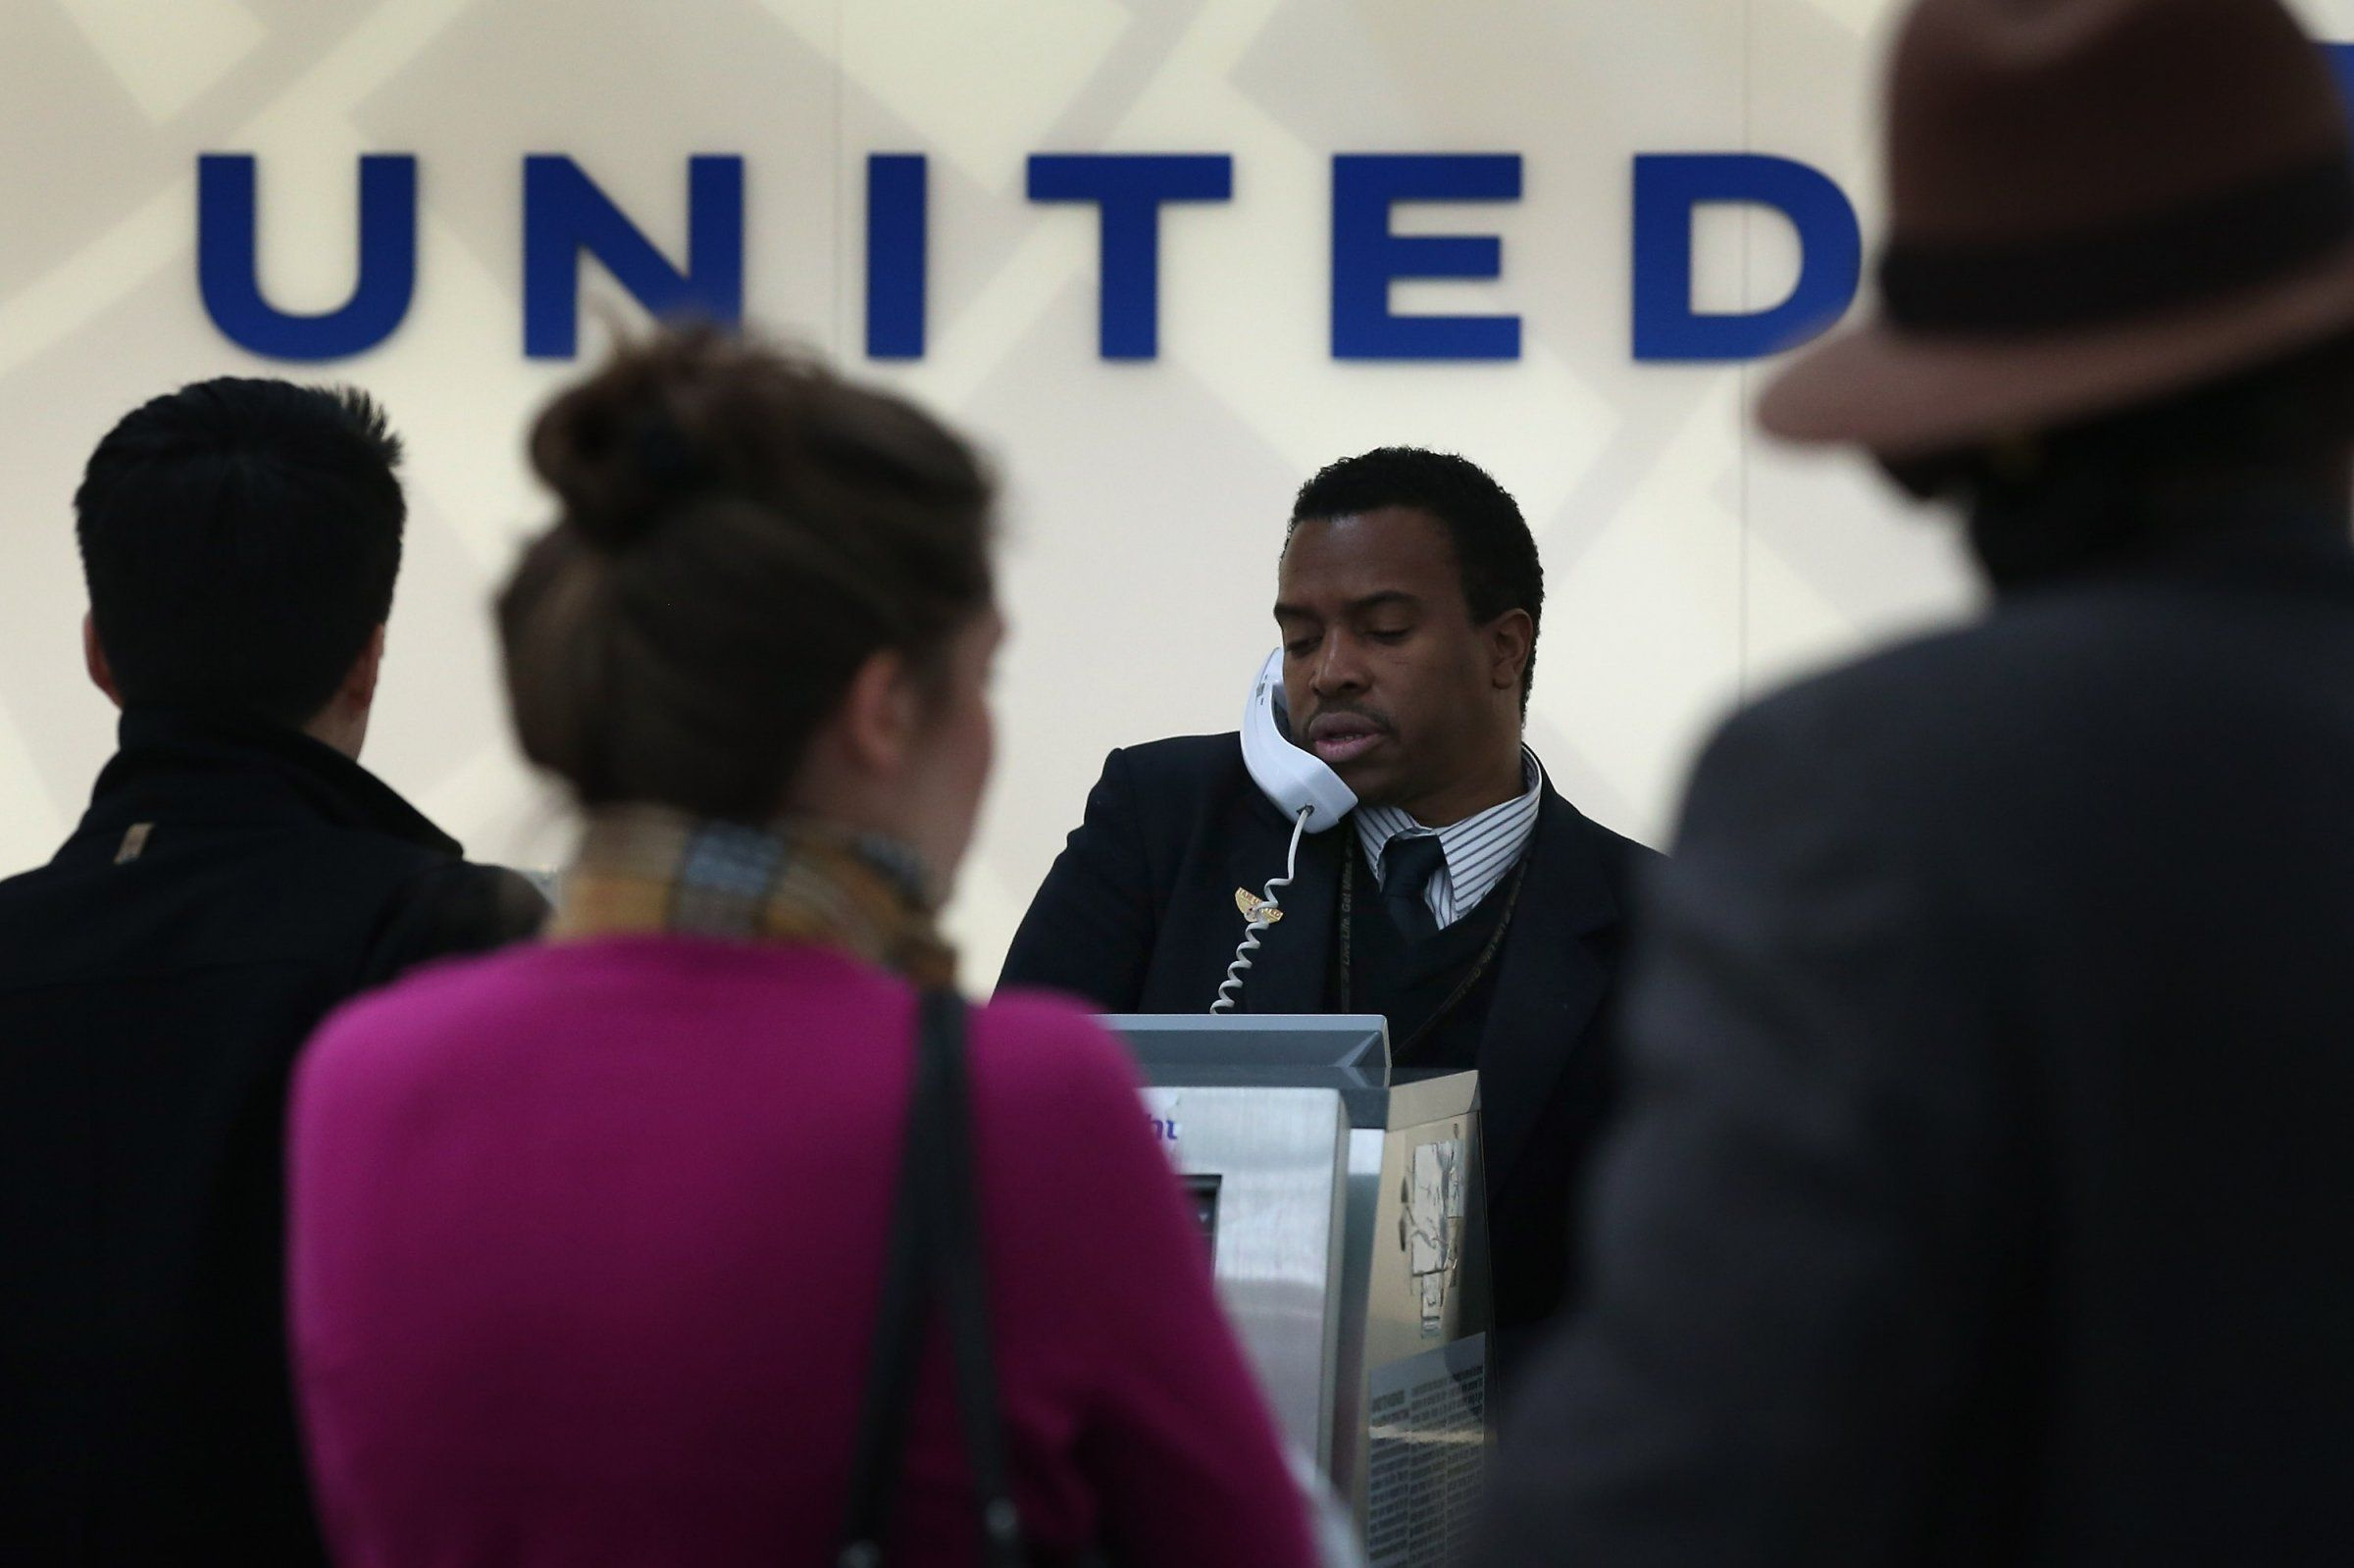 United changes emotionalsupport animal rules United